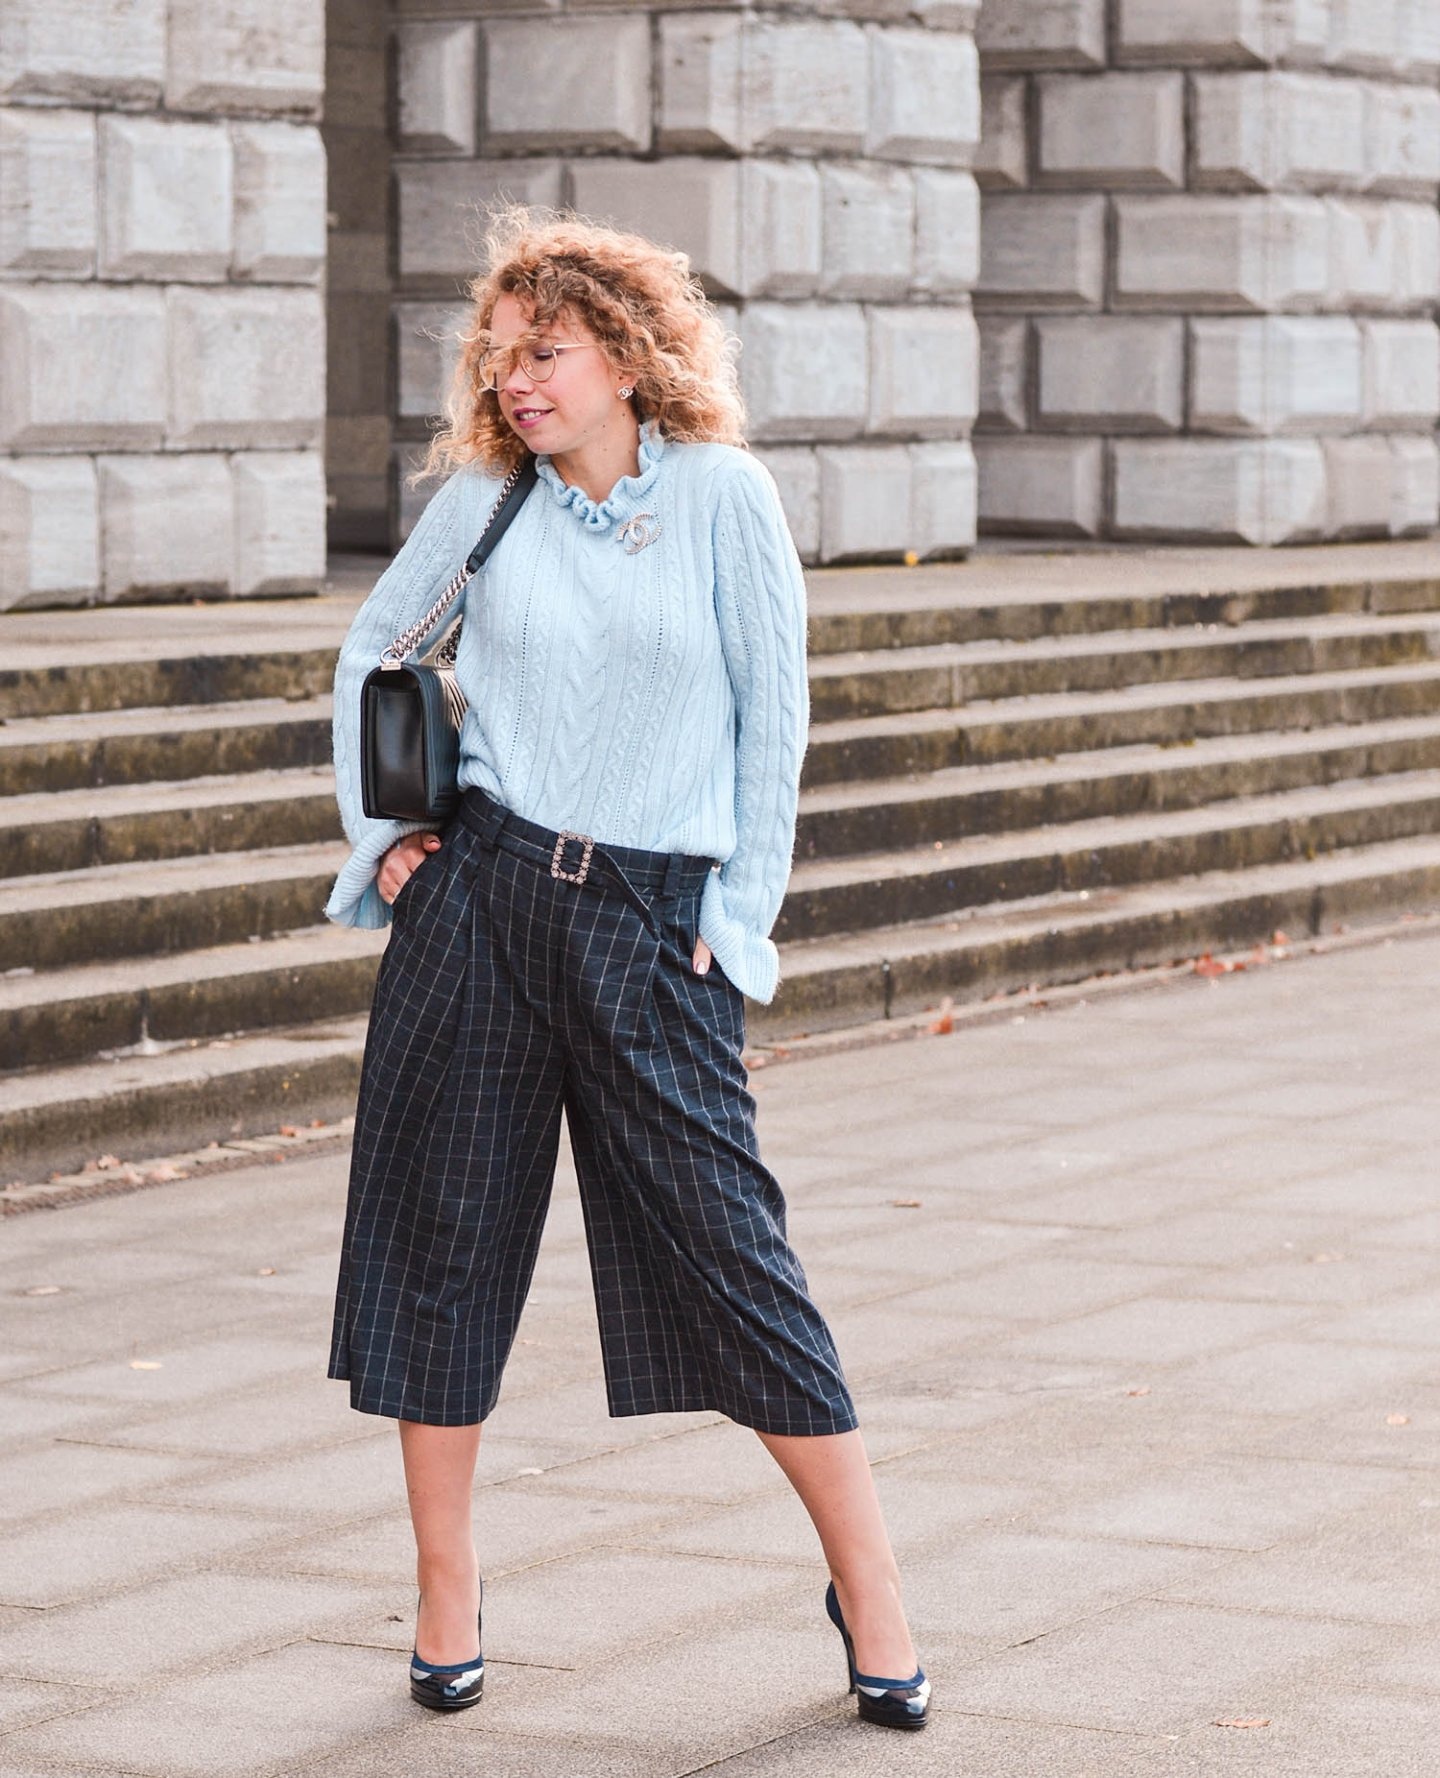 Karierte Culottes, Chanel Boy und High Heels